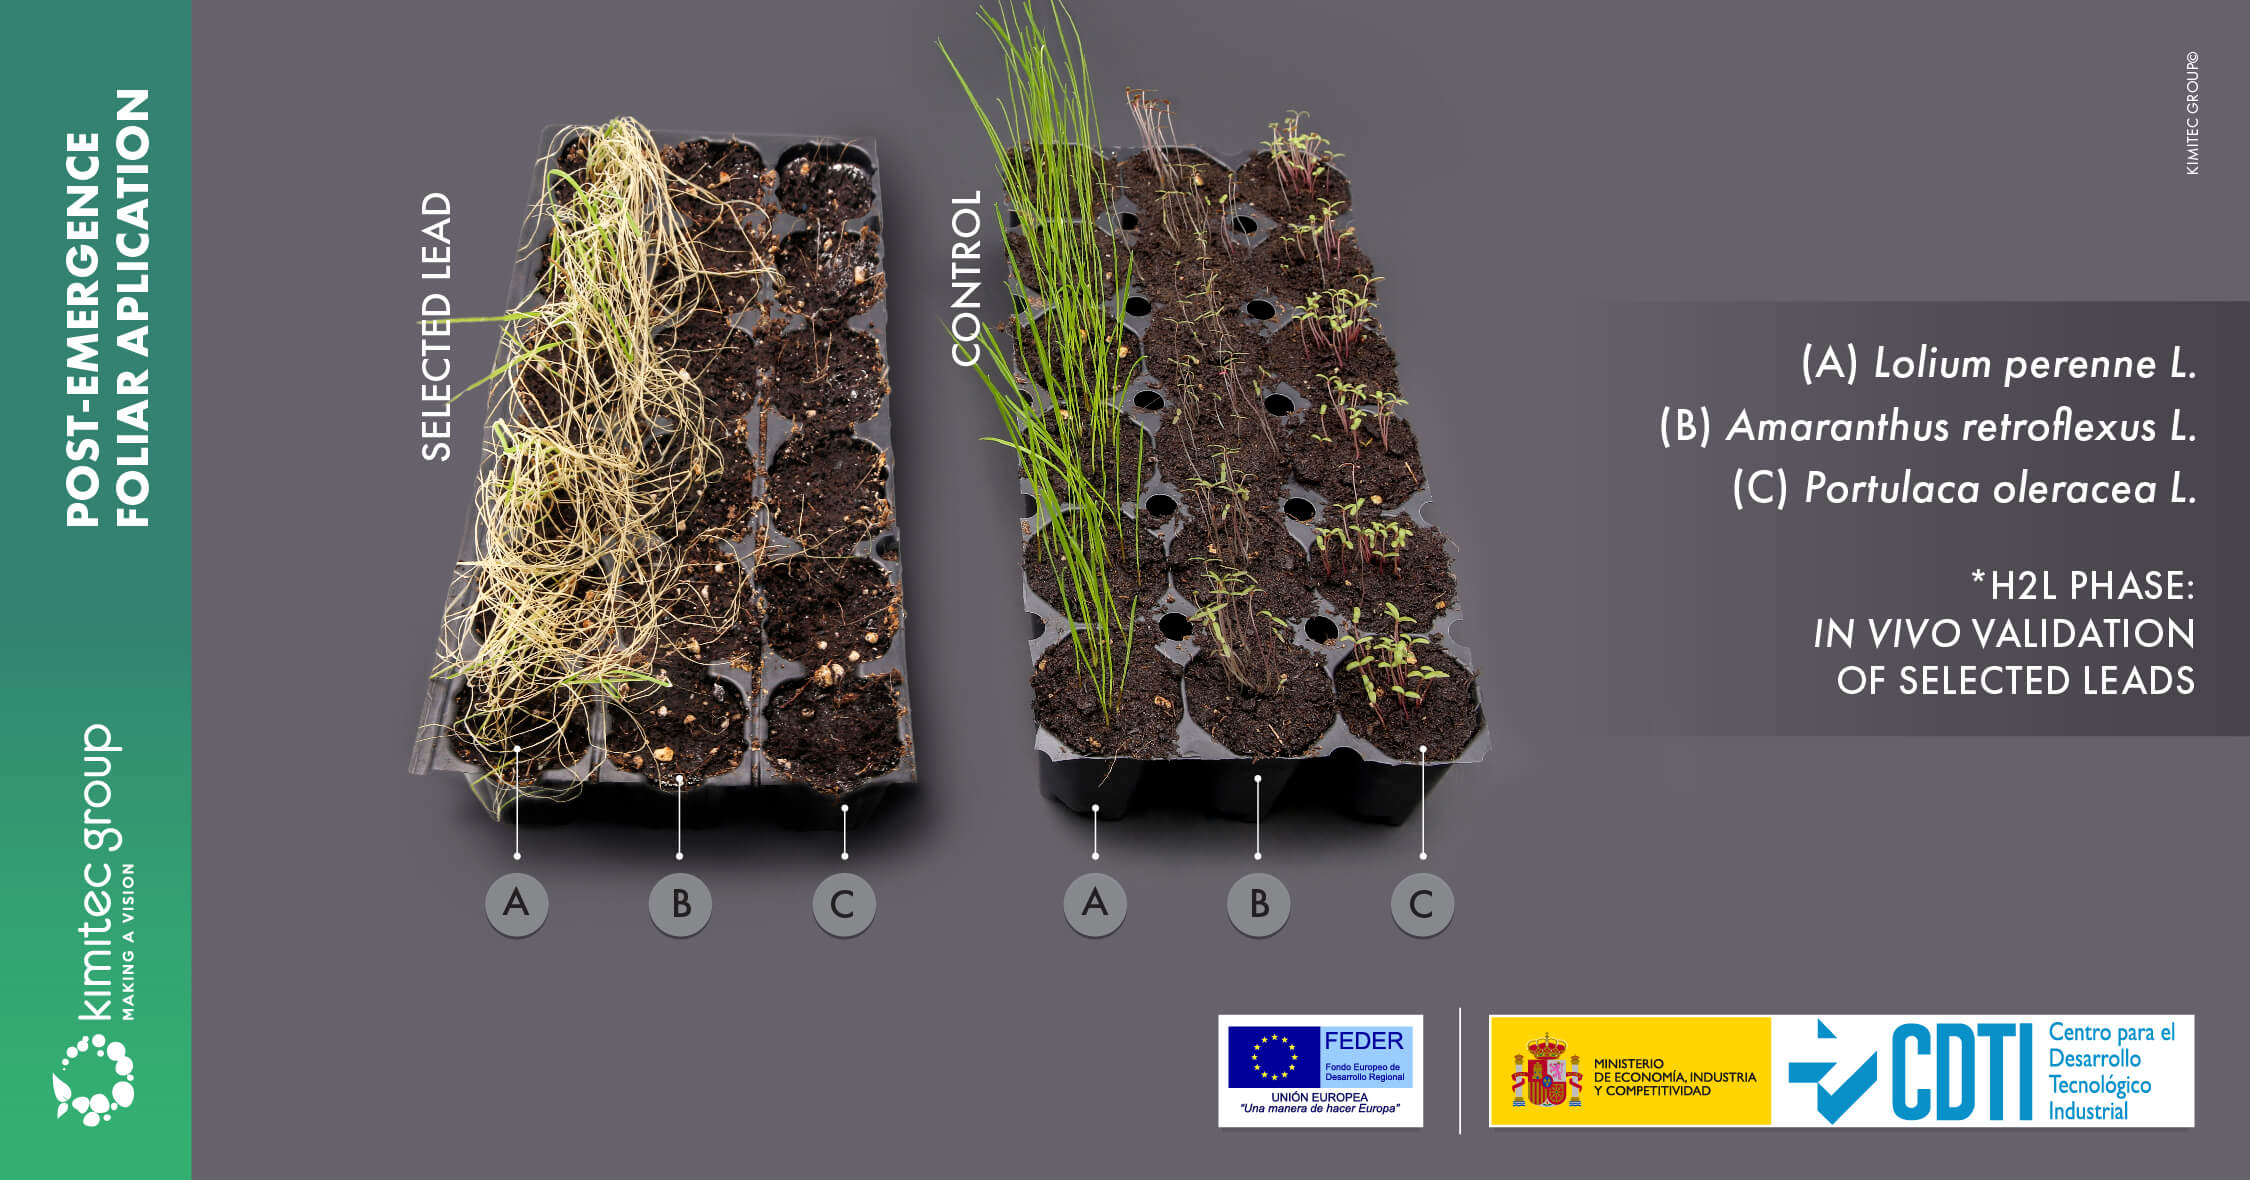 Foliar contact treatment during weed post-emergence